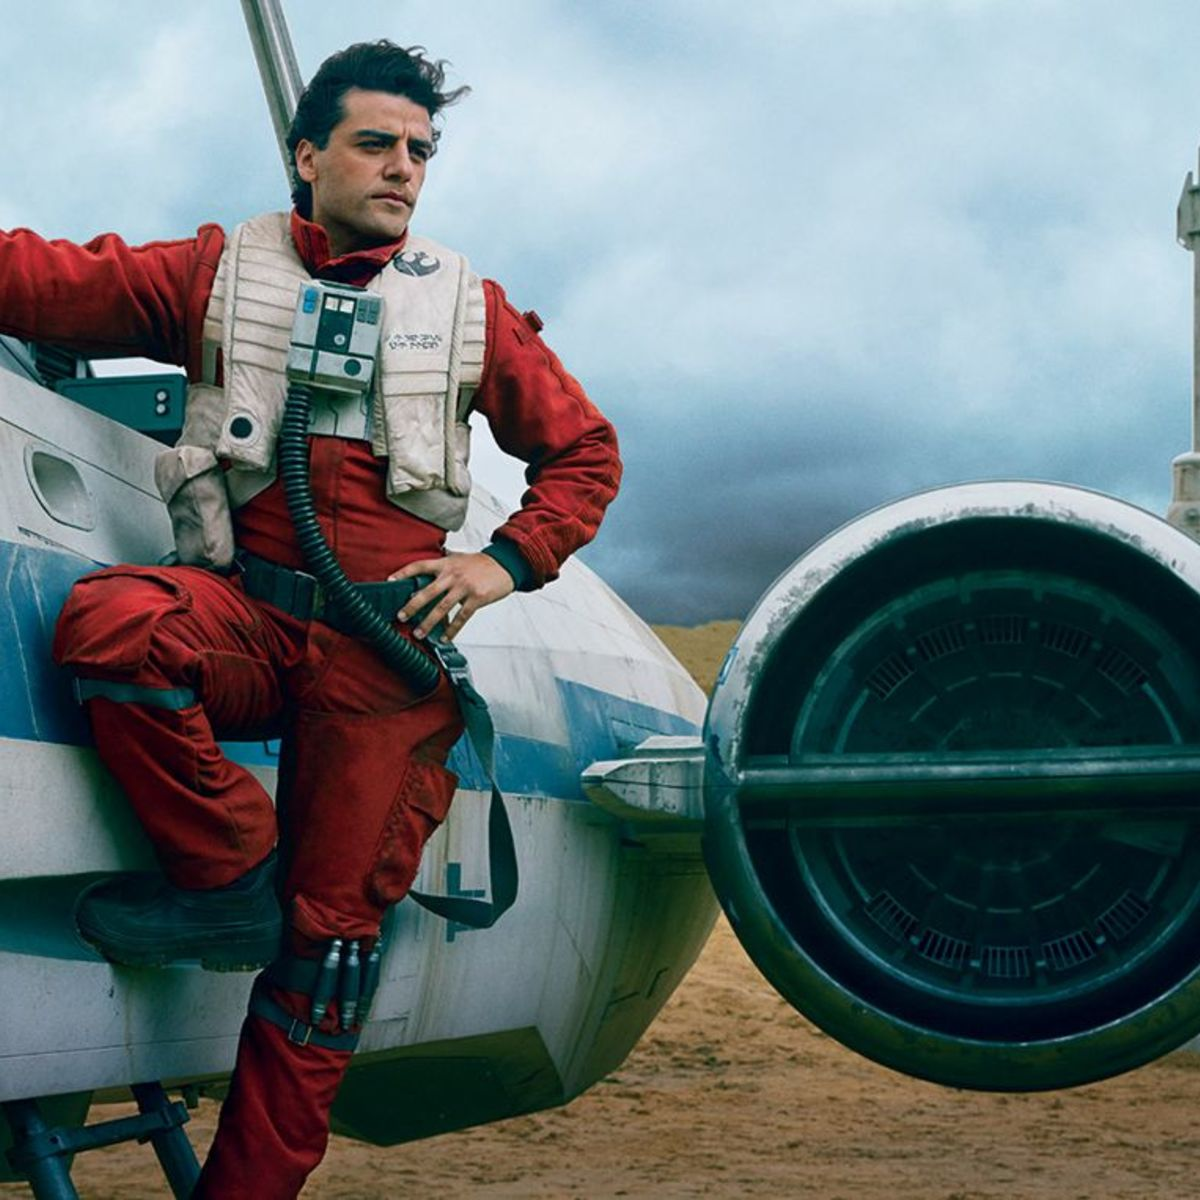 how-exactly-did-poe-dameron-escape-jakku-alive-in-star-wars-episode-7-the-force-awakens-781997.jpg